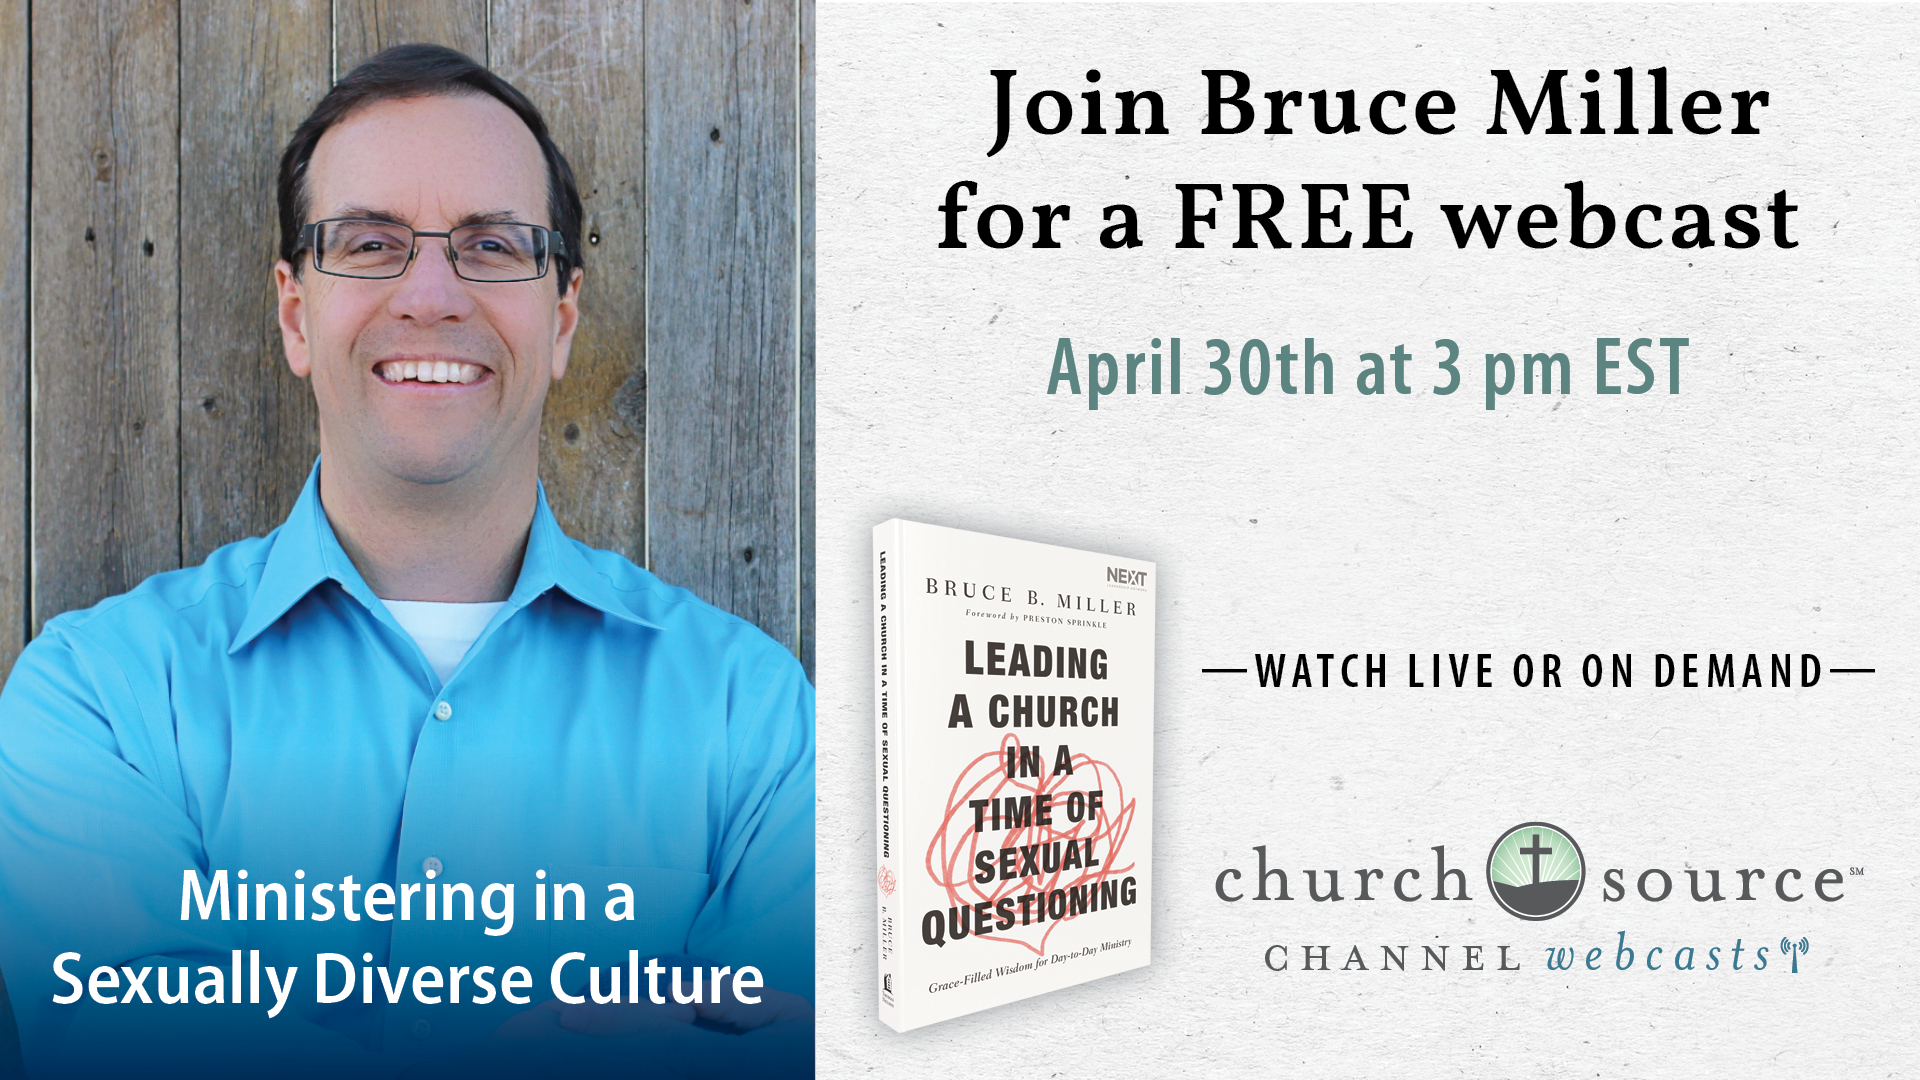 How to Minister in a Sexually Diverse Culture - Webcast with Bruce Miller